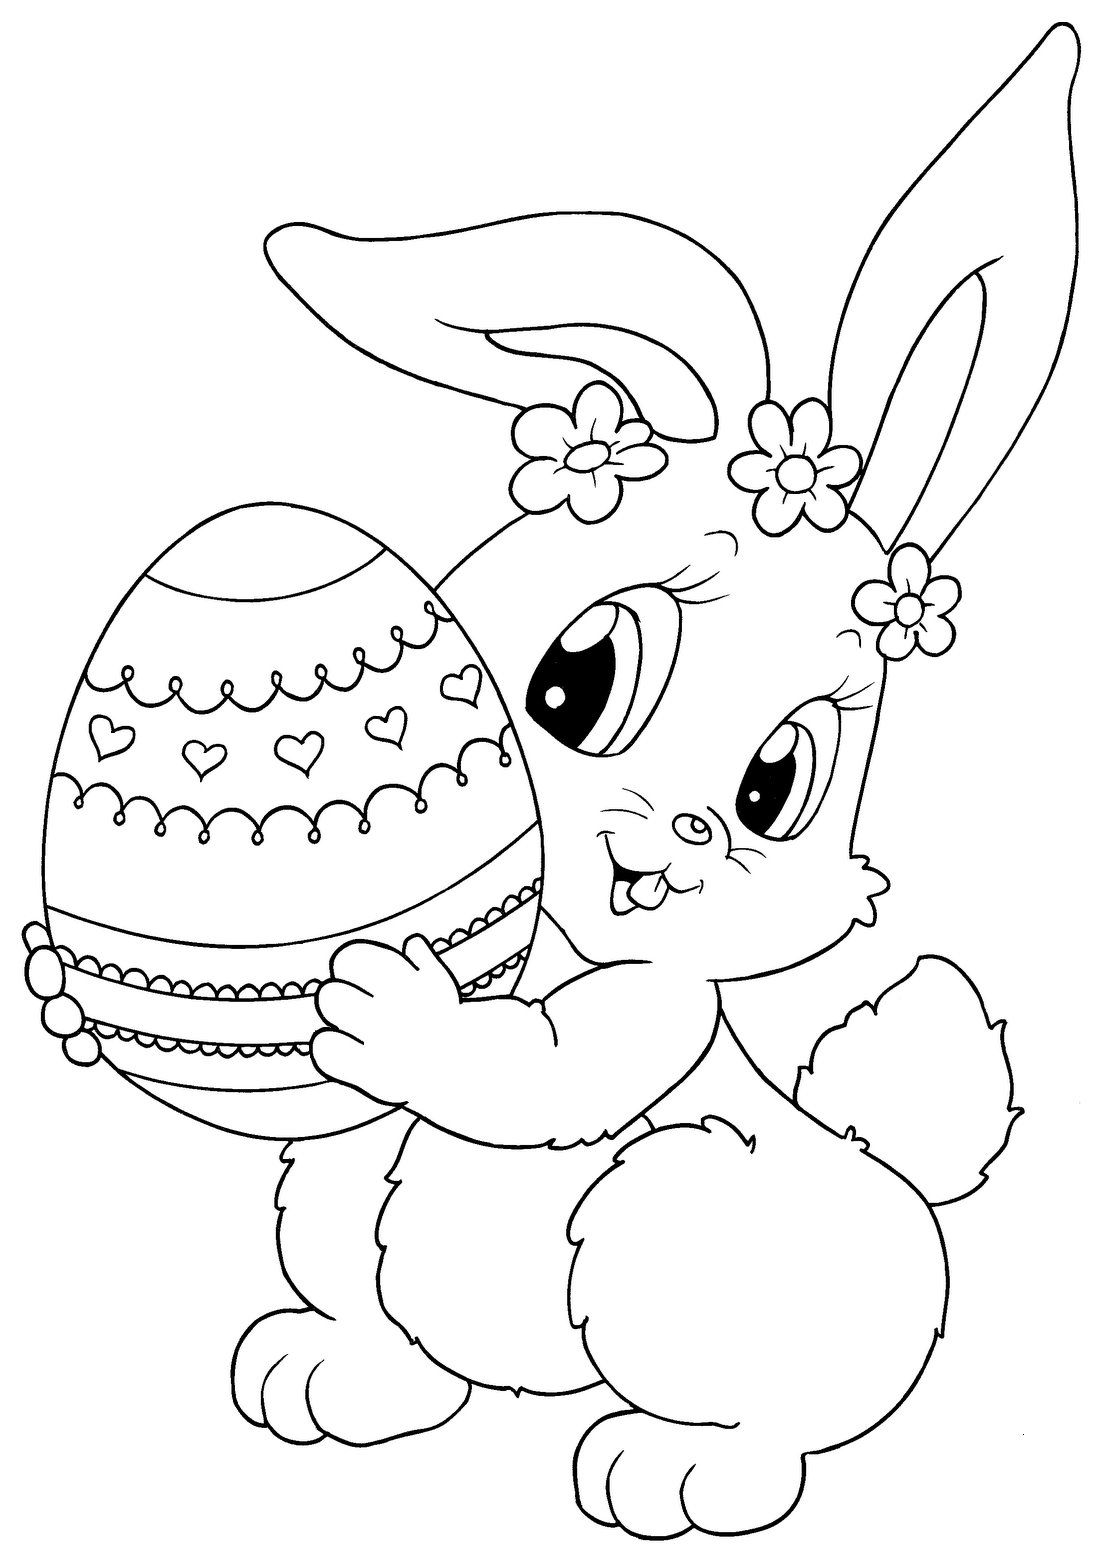 Top 15 Free Printable Easter Bunny Coloring Pages Online in 2018 ...